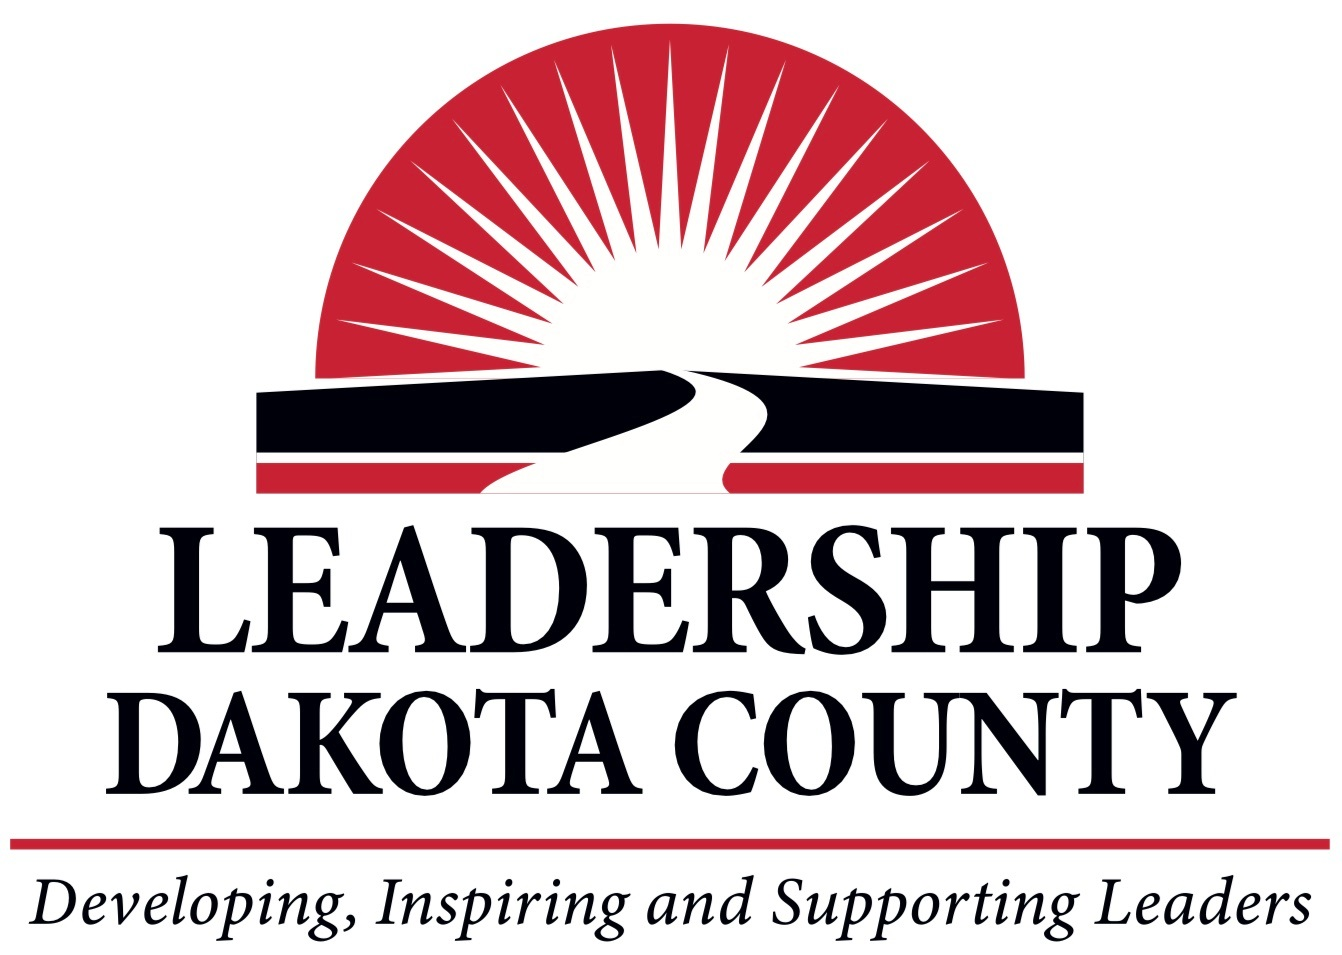 Leadership Dakota County